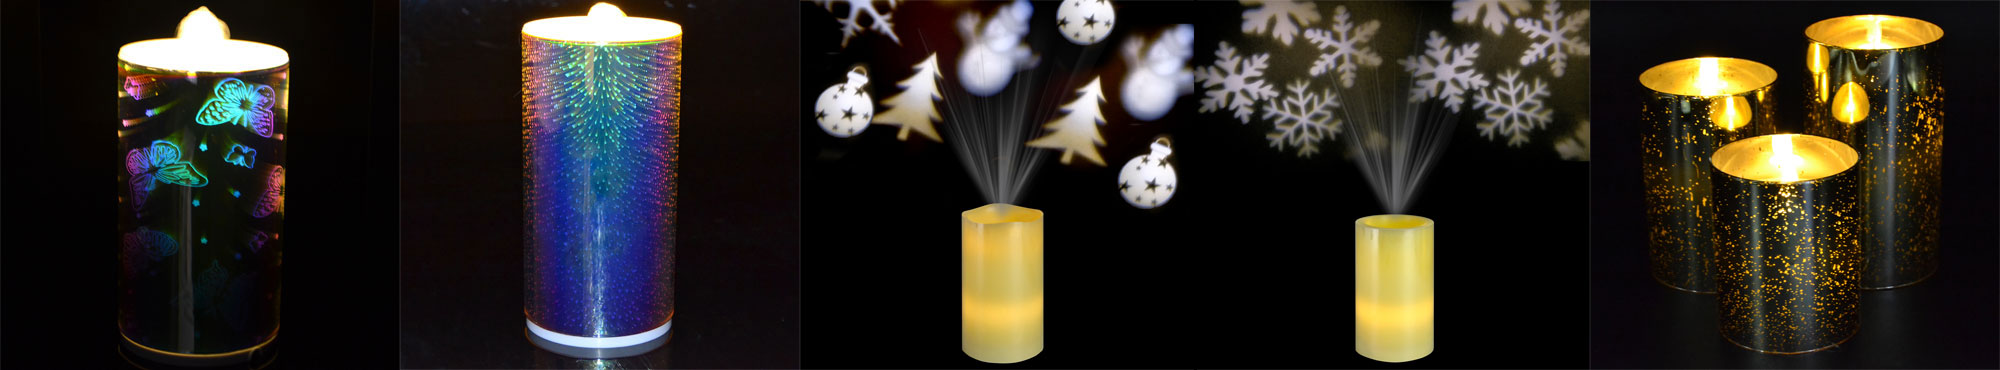 fountain flameless led candles